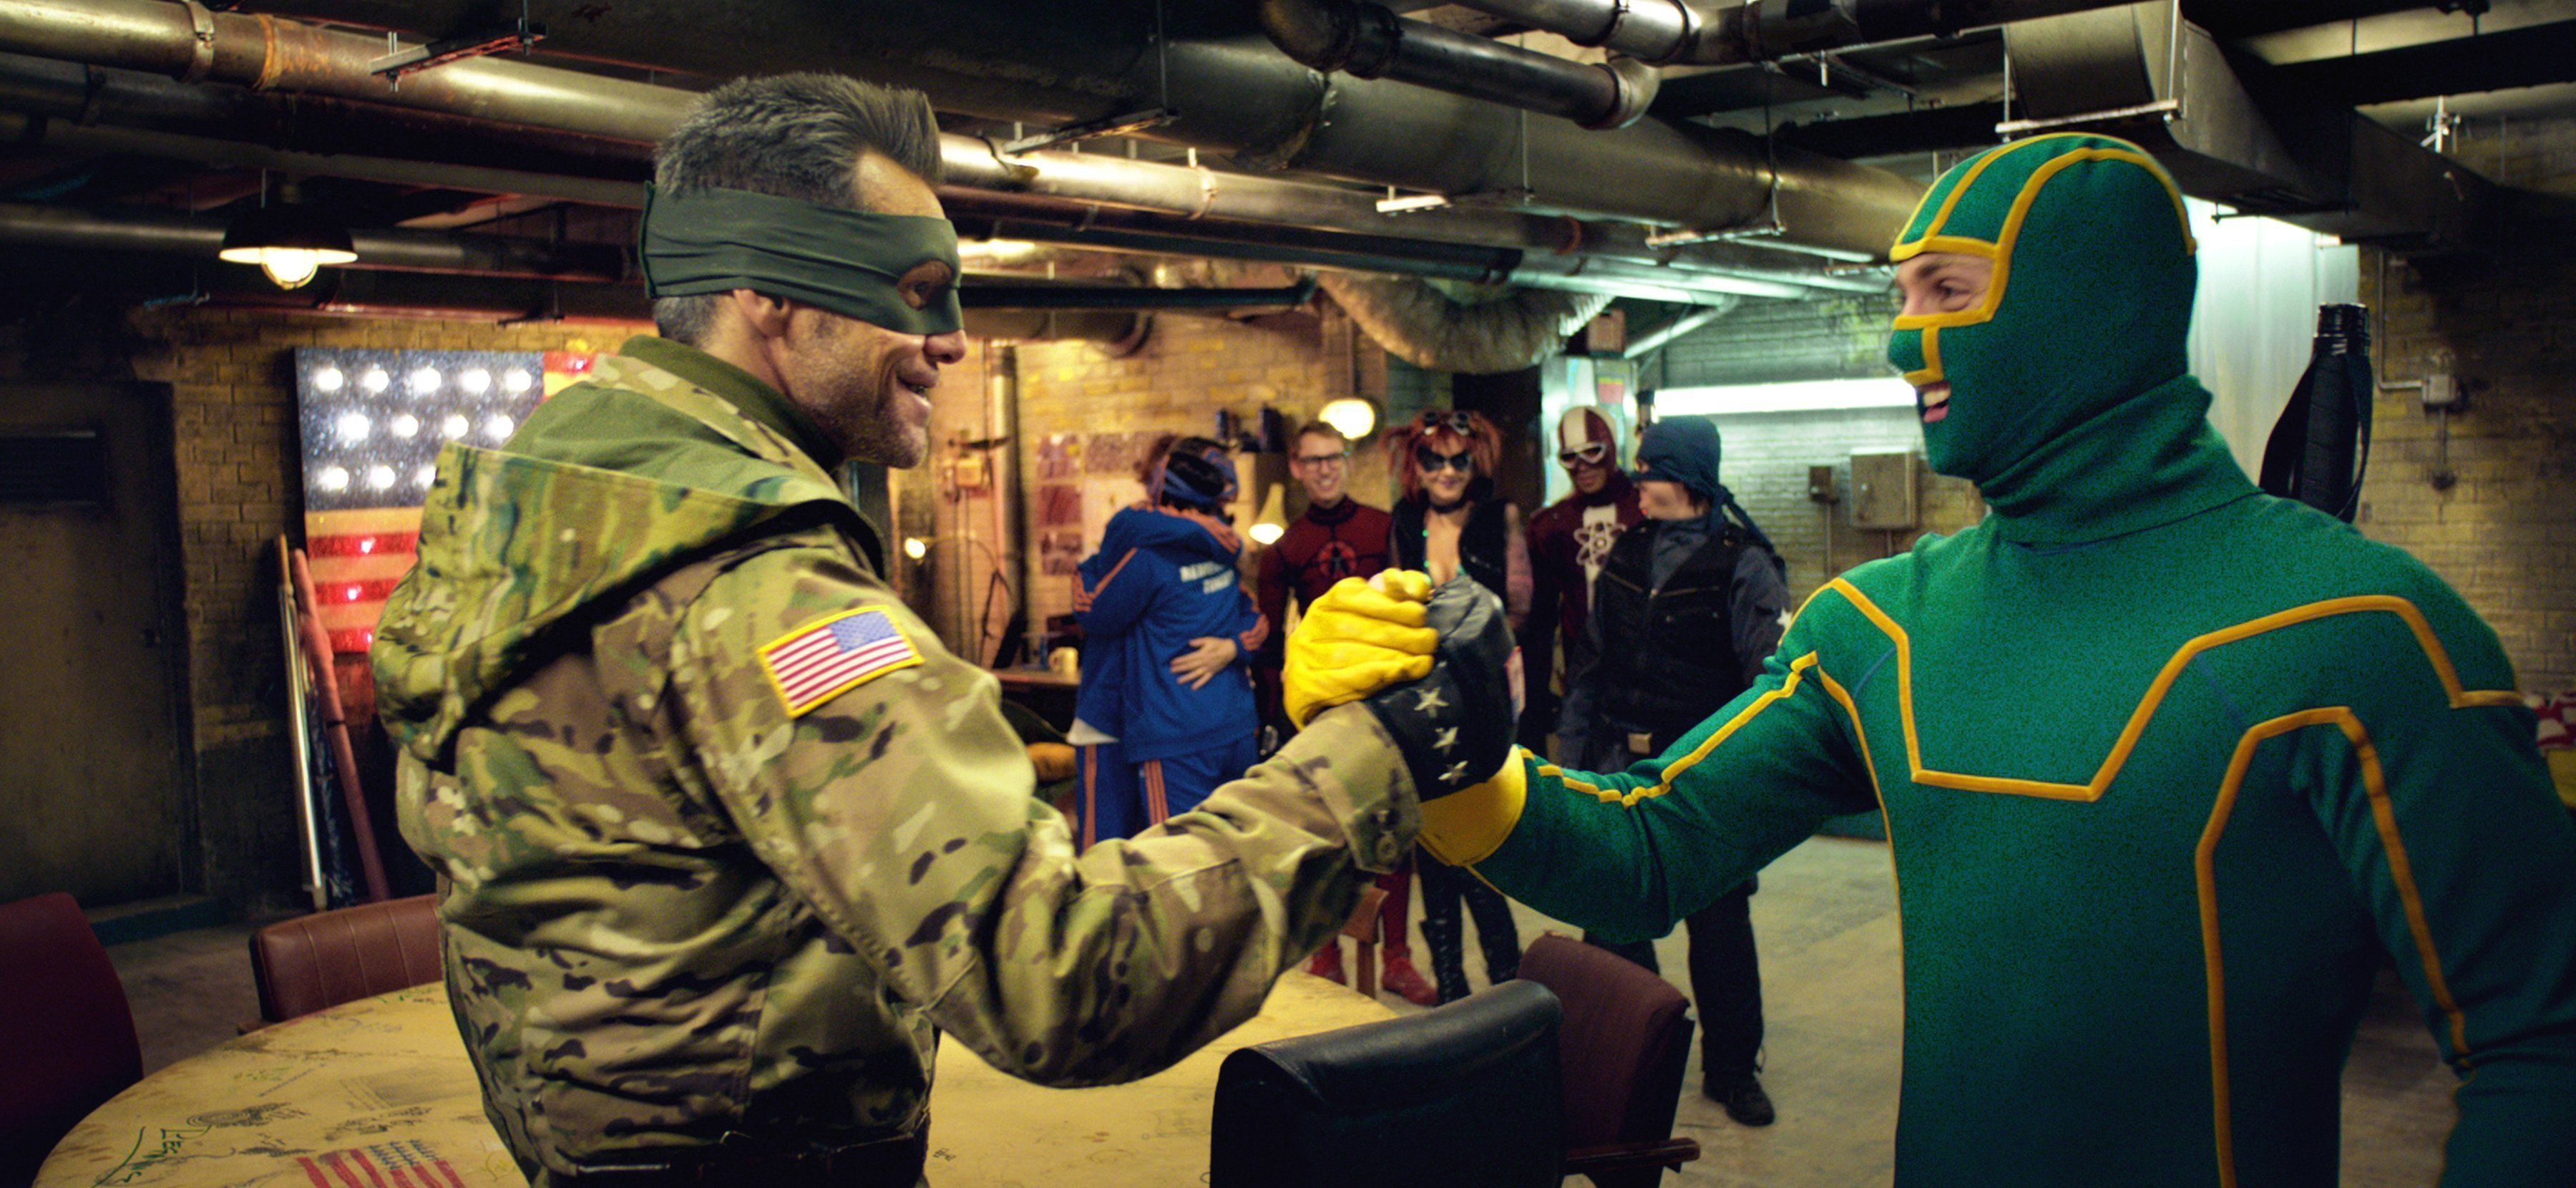 Photo du film Kick-Ass 2 avec le colonel Stars and Stripes et Kick-Ass